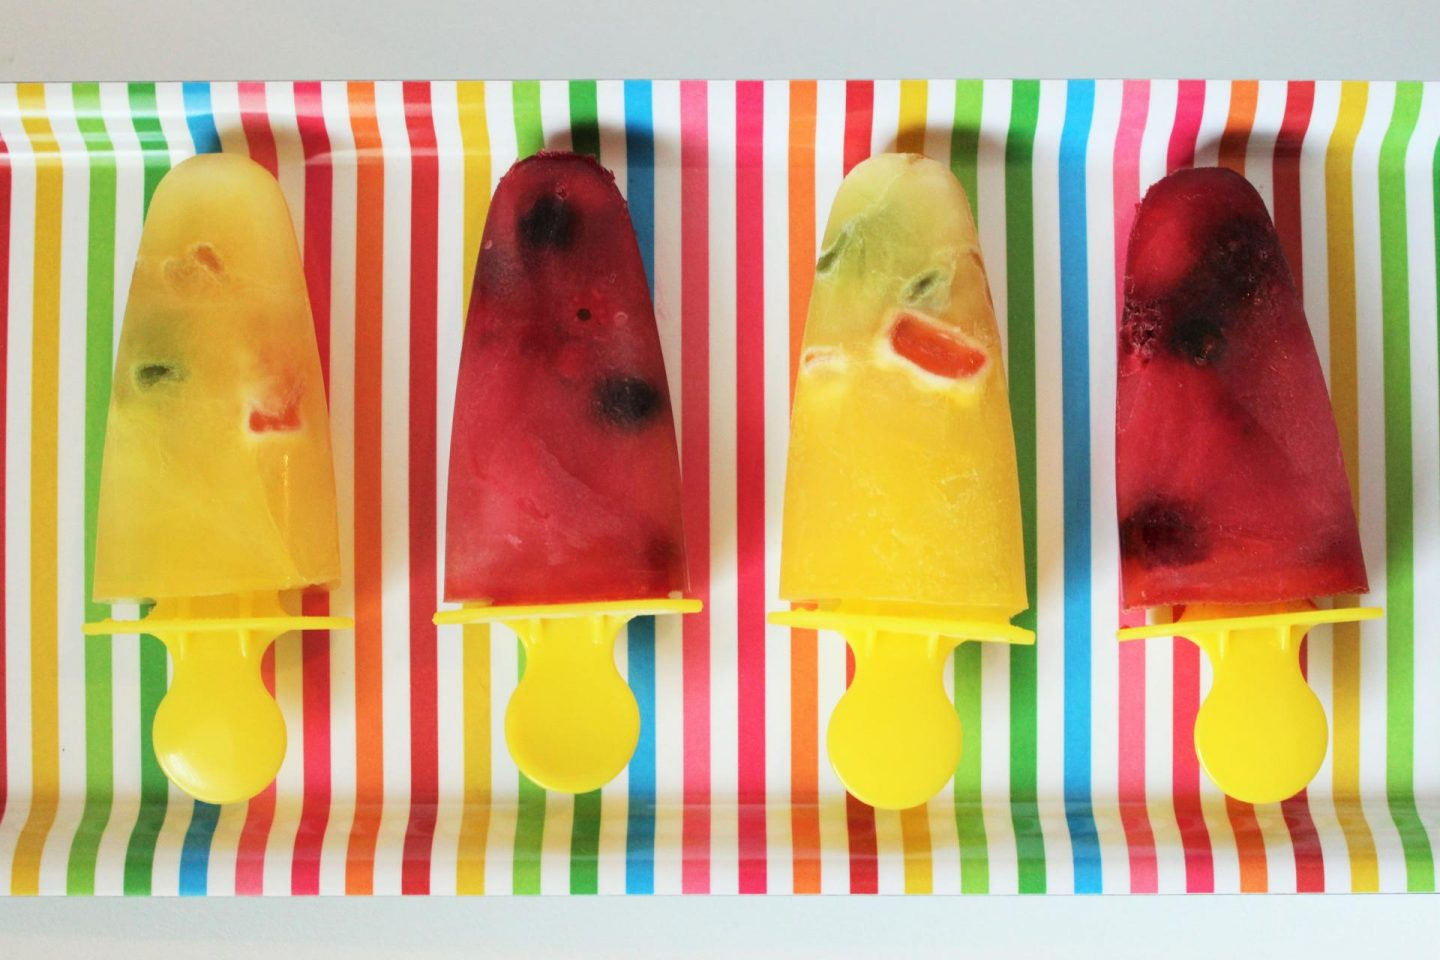 Super Simple Summer Ice Lollies